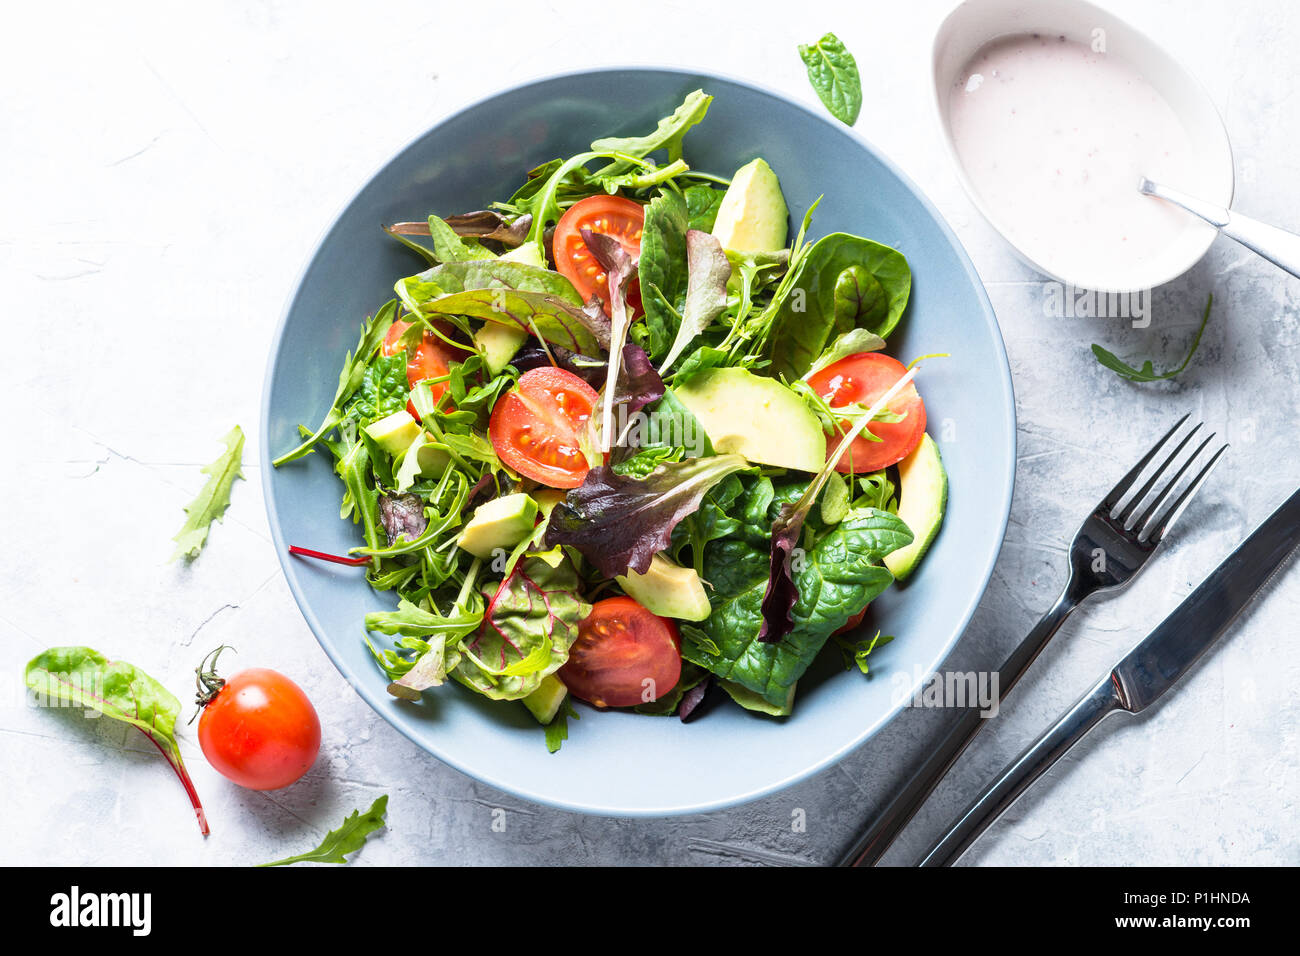 Fresh green salad with mixed green leaves, tomatoes and avocado with yogurt sauce. Clean eating and diet food. - Stock Image